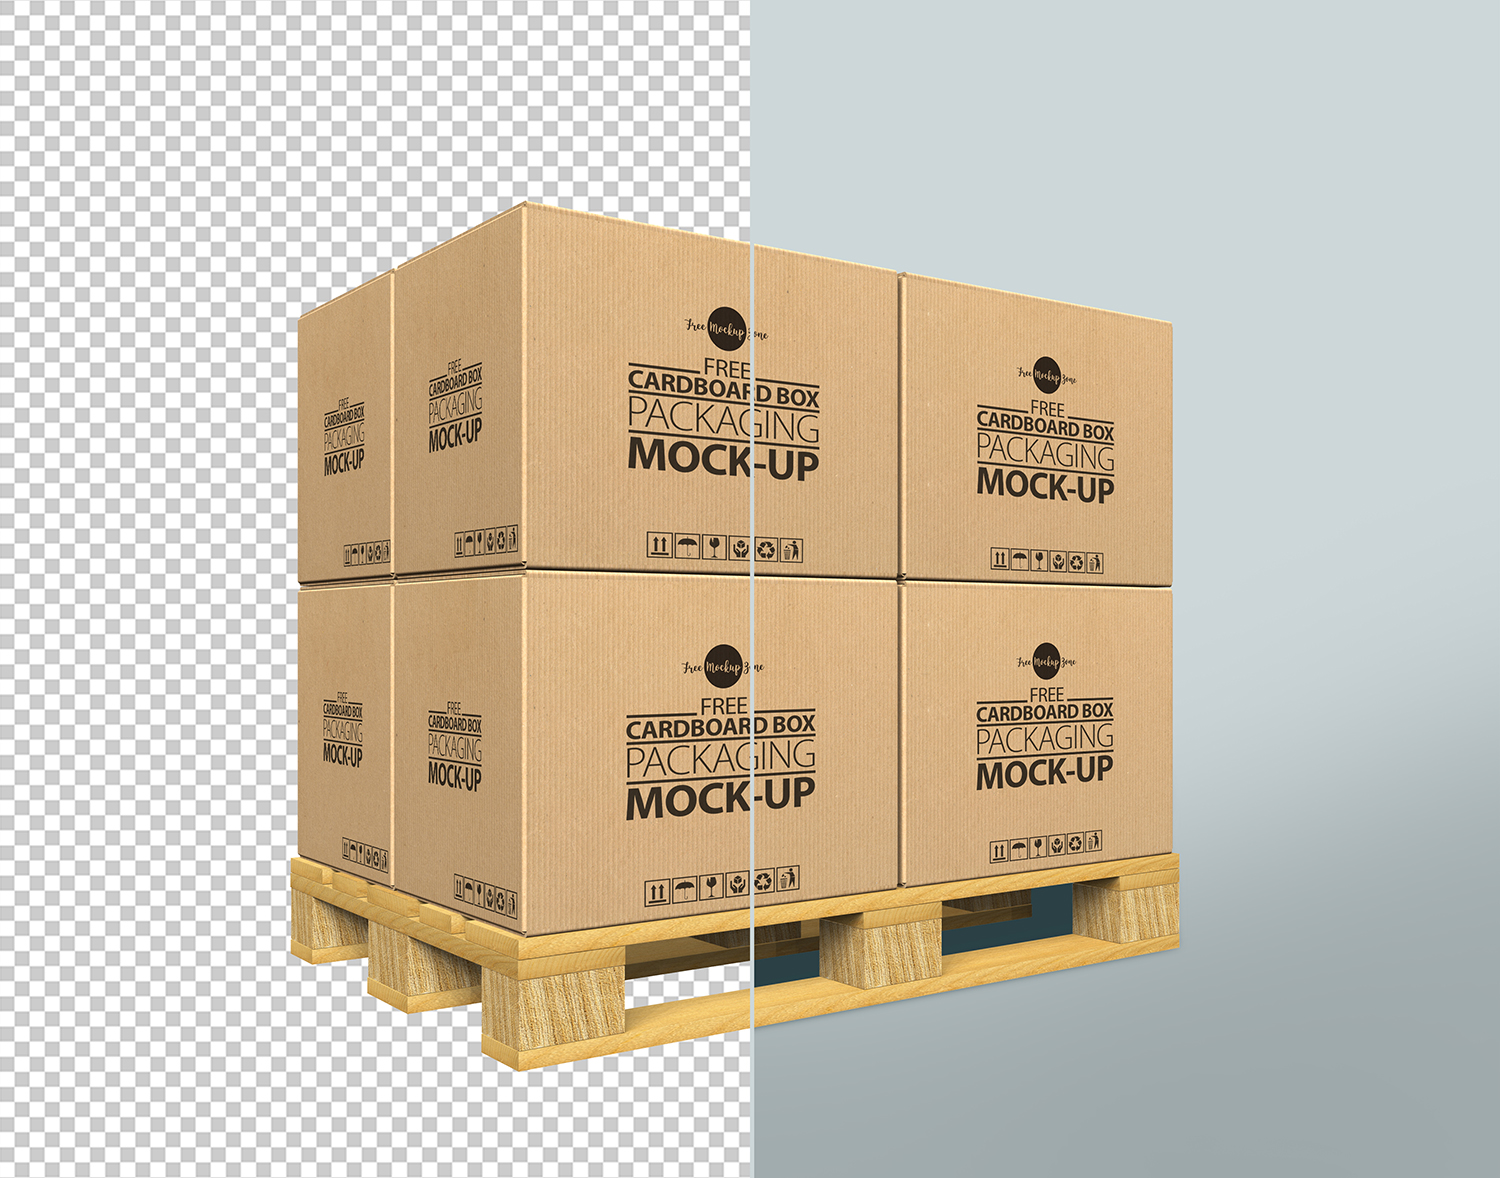 free-cardboard-box-packaging-mock-up-psd-3